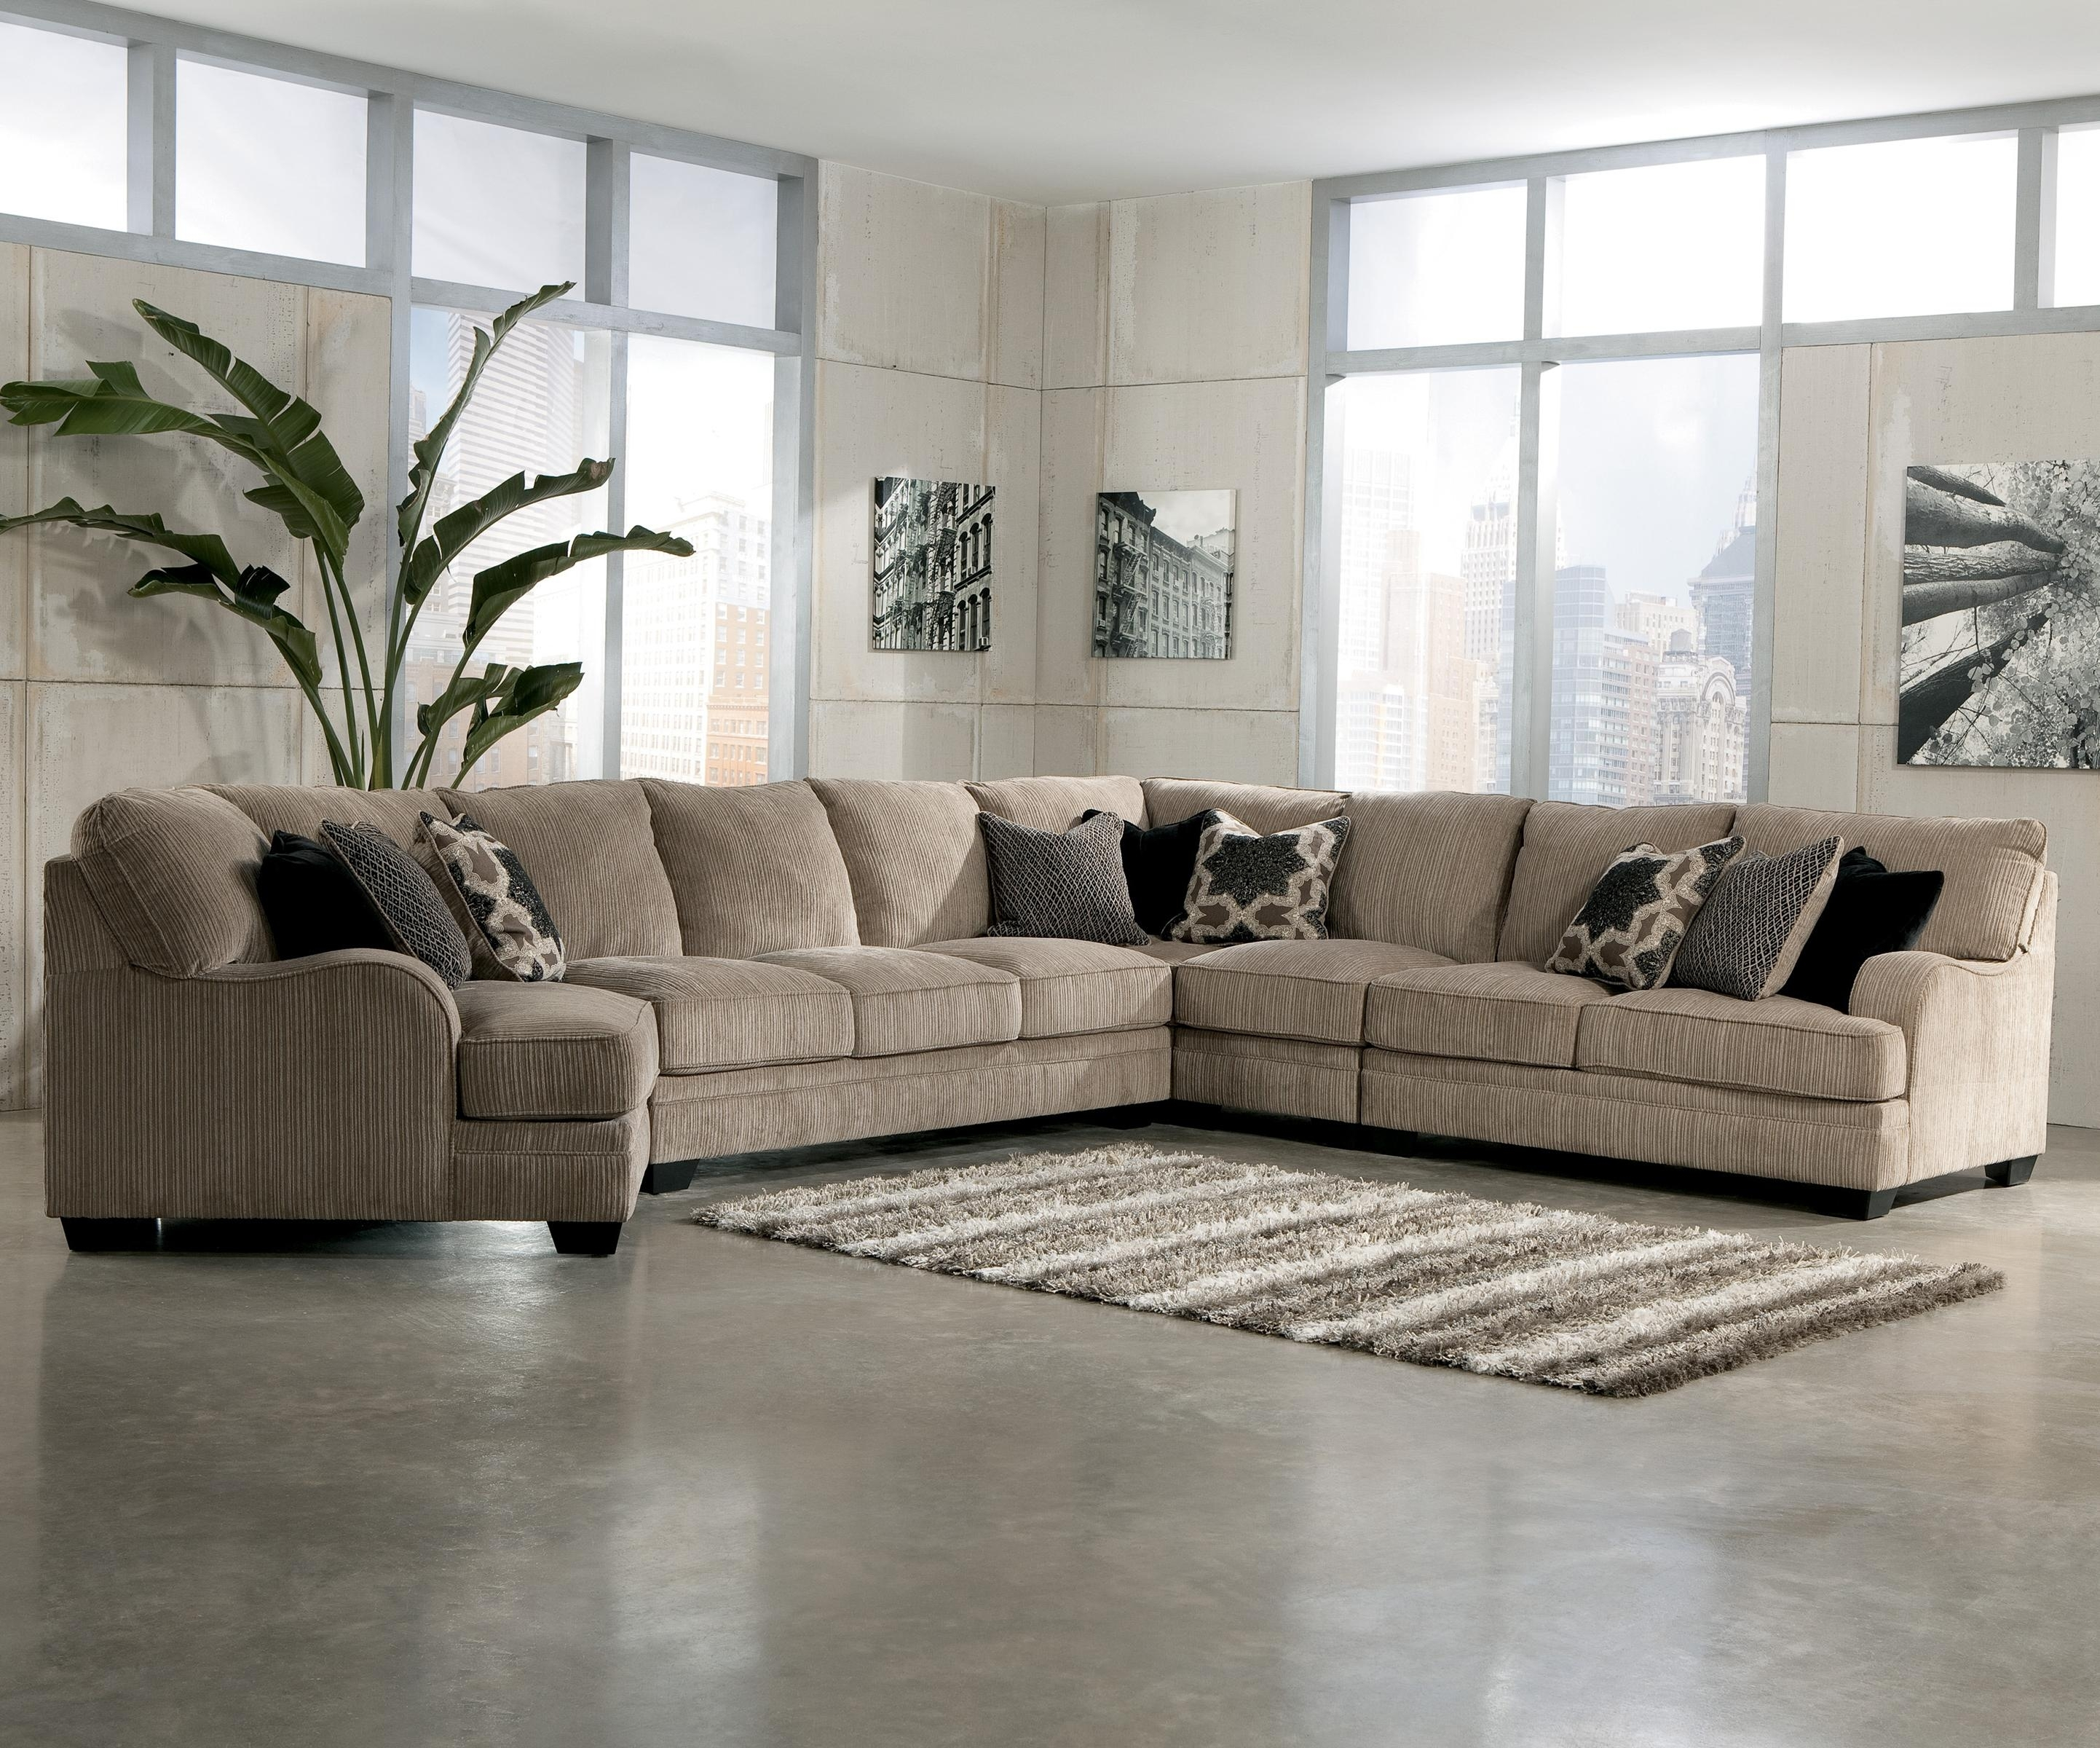 Signature Designashley Katisha – Platinum 5 Piece Sectional Sofa With Pittsburgh Sectional Sofas (View 9 of 10)